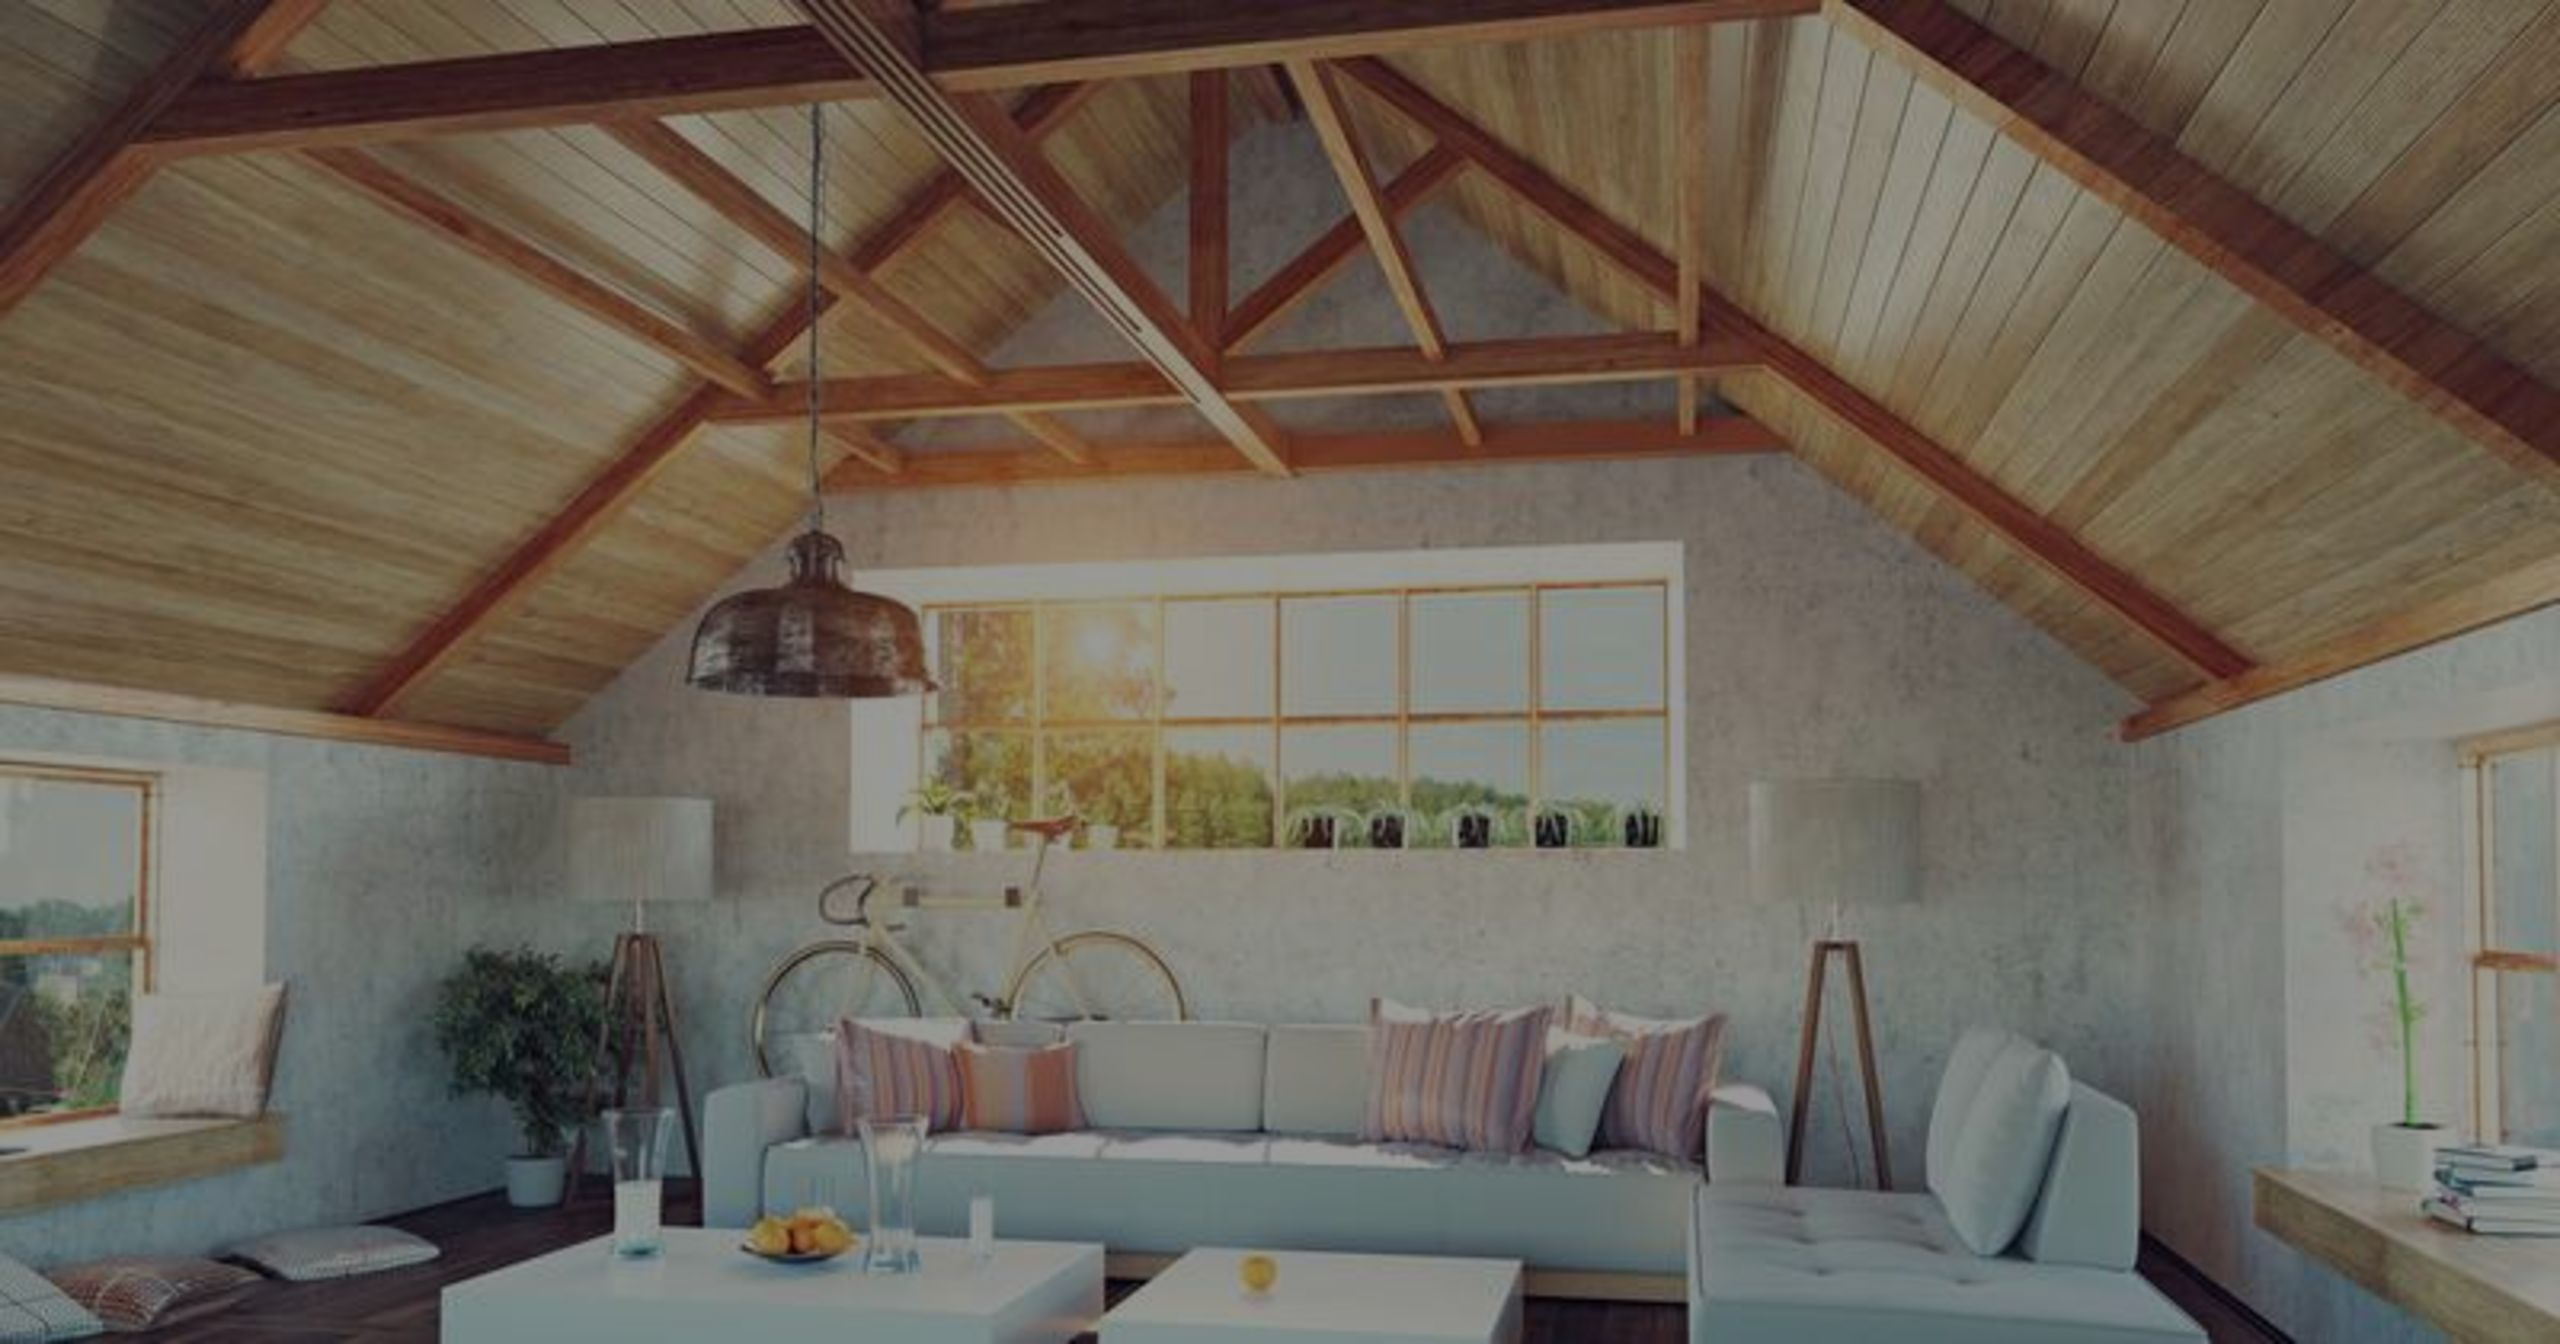 DESIGN: IDEAS FOR YOUR CEILING